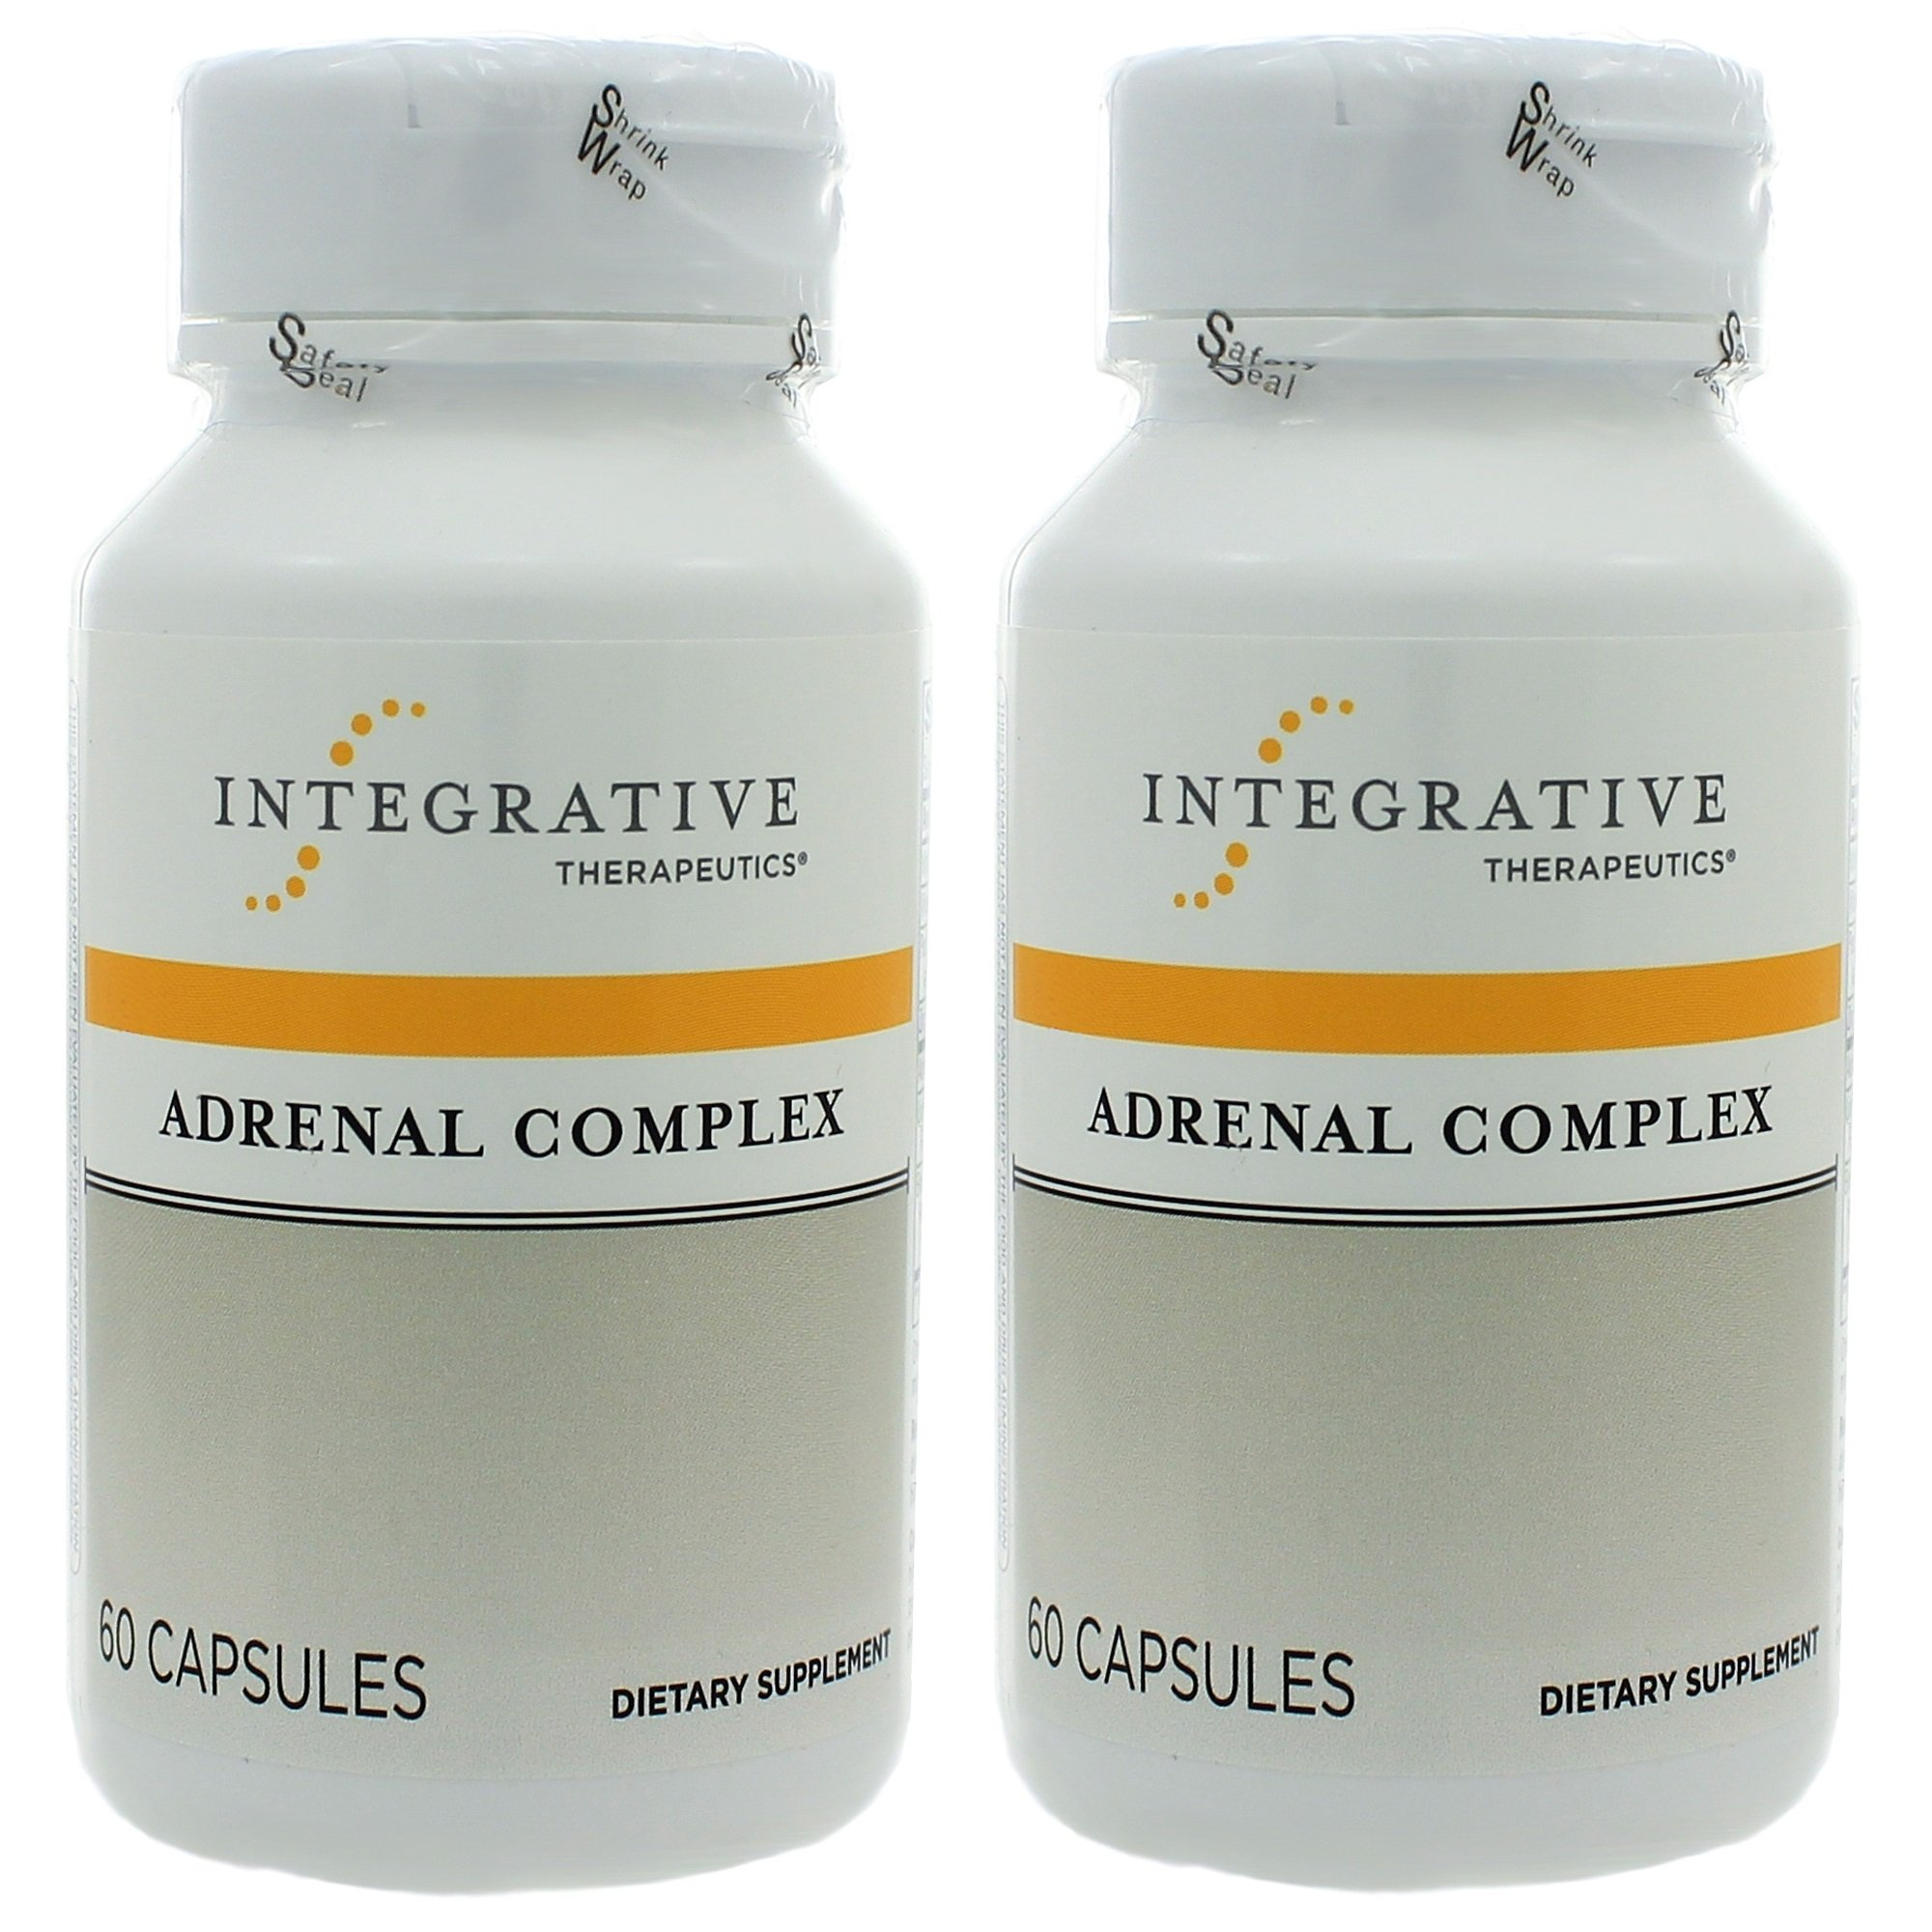 Adrenal Complex by Integrative Therapeutics - 60 capsules – Discount 2 pack (120 caps)